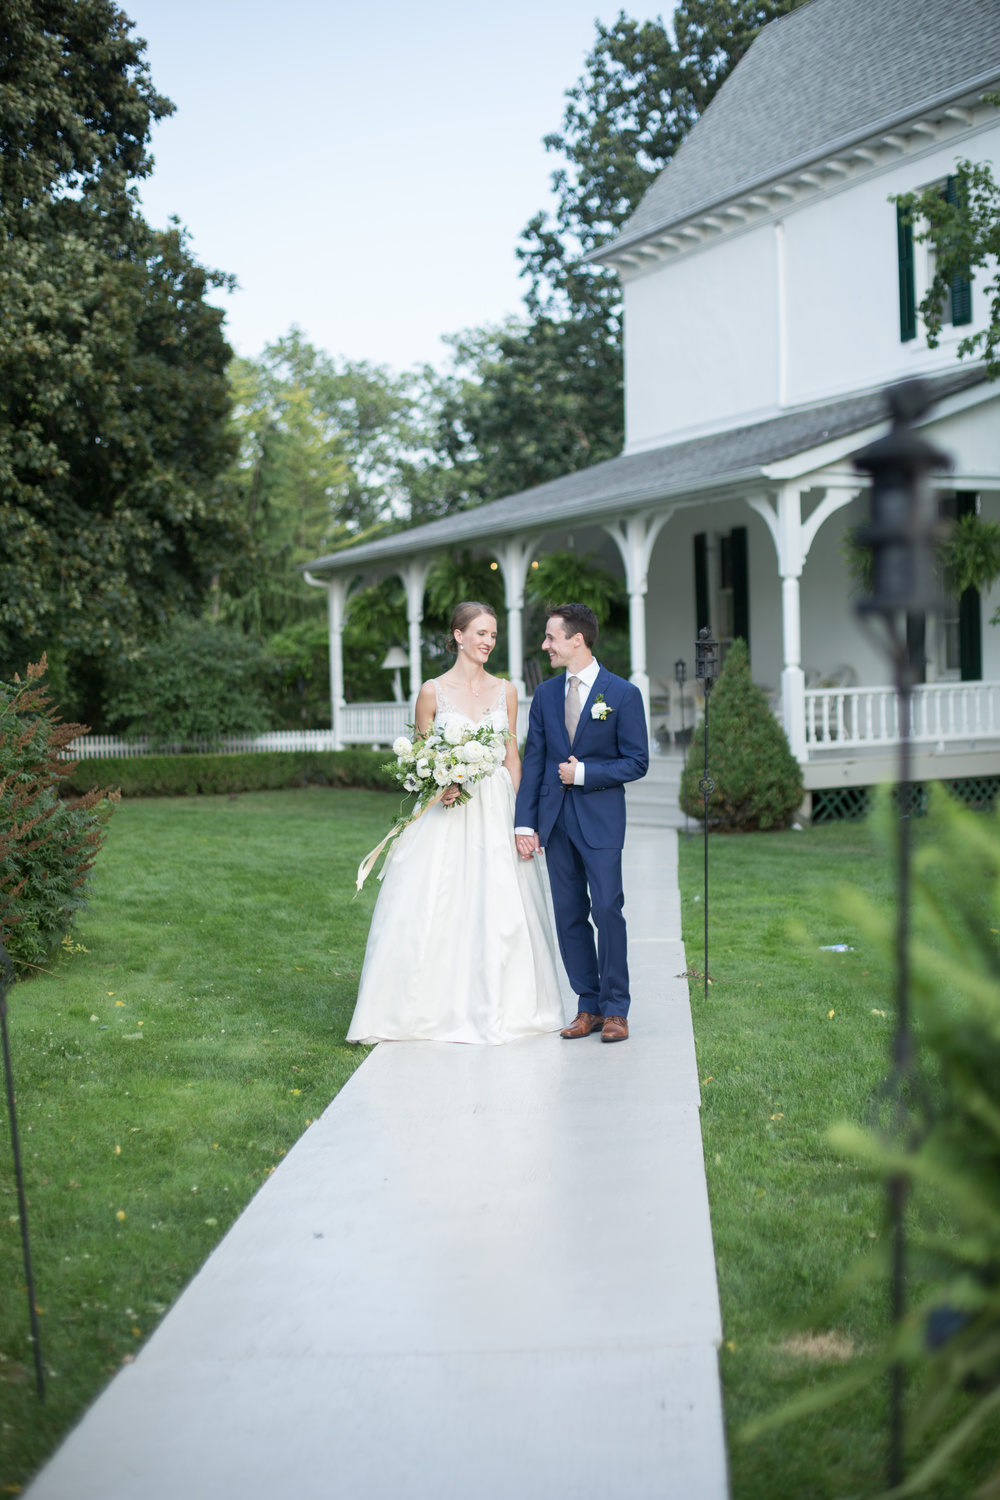 The-Grand-Victorian-Niagara-on-the-Lake-Wedding-photography-by-Amanda-Lachapelle-079.JPG